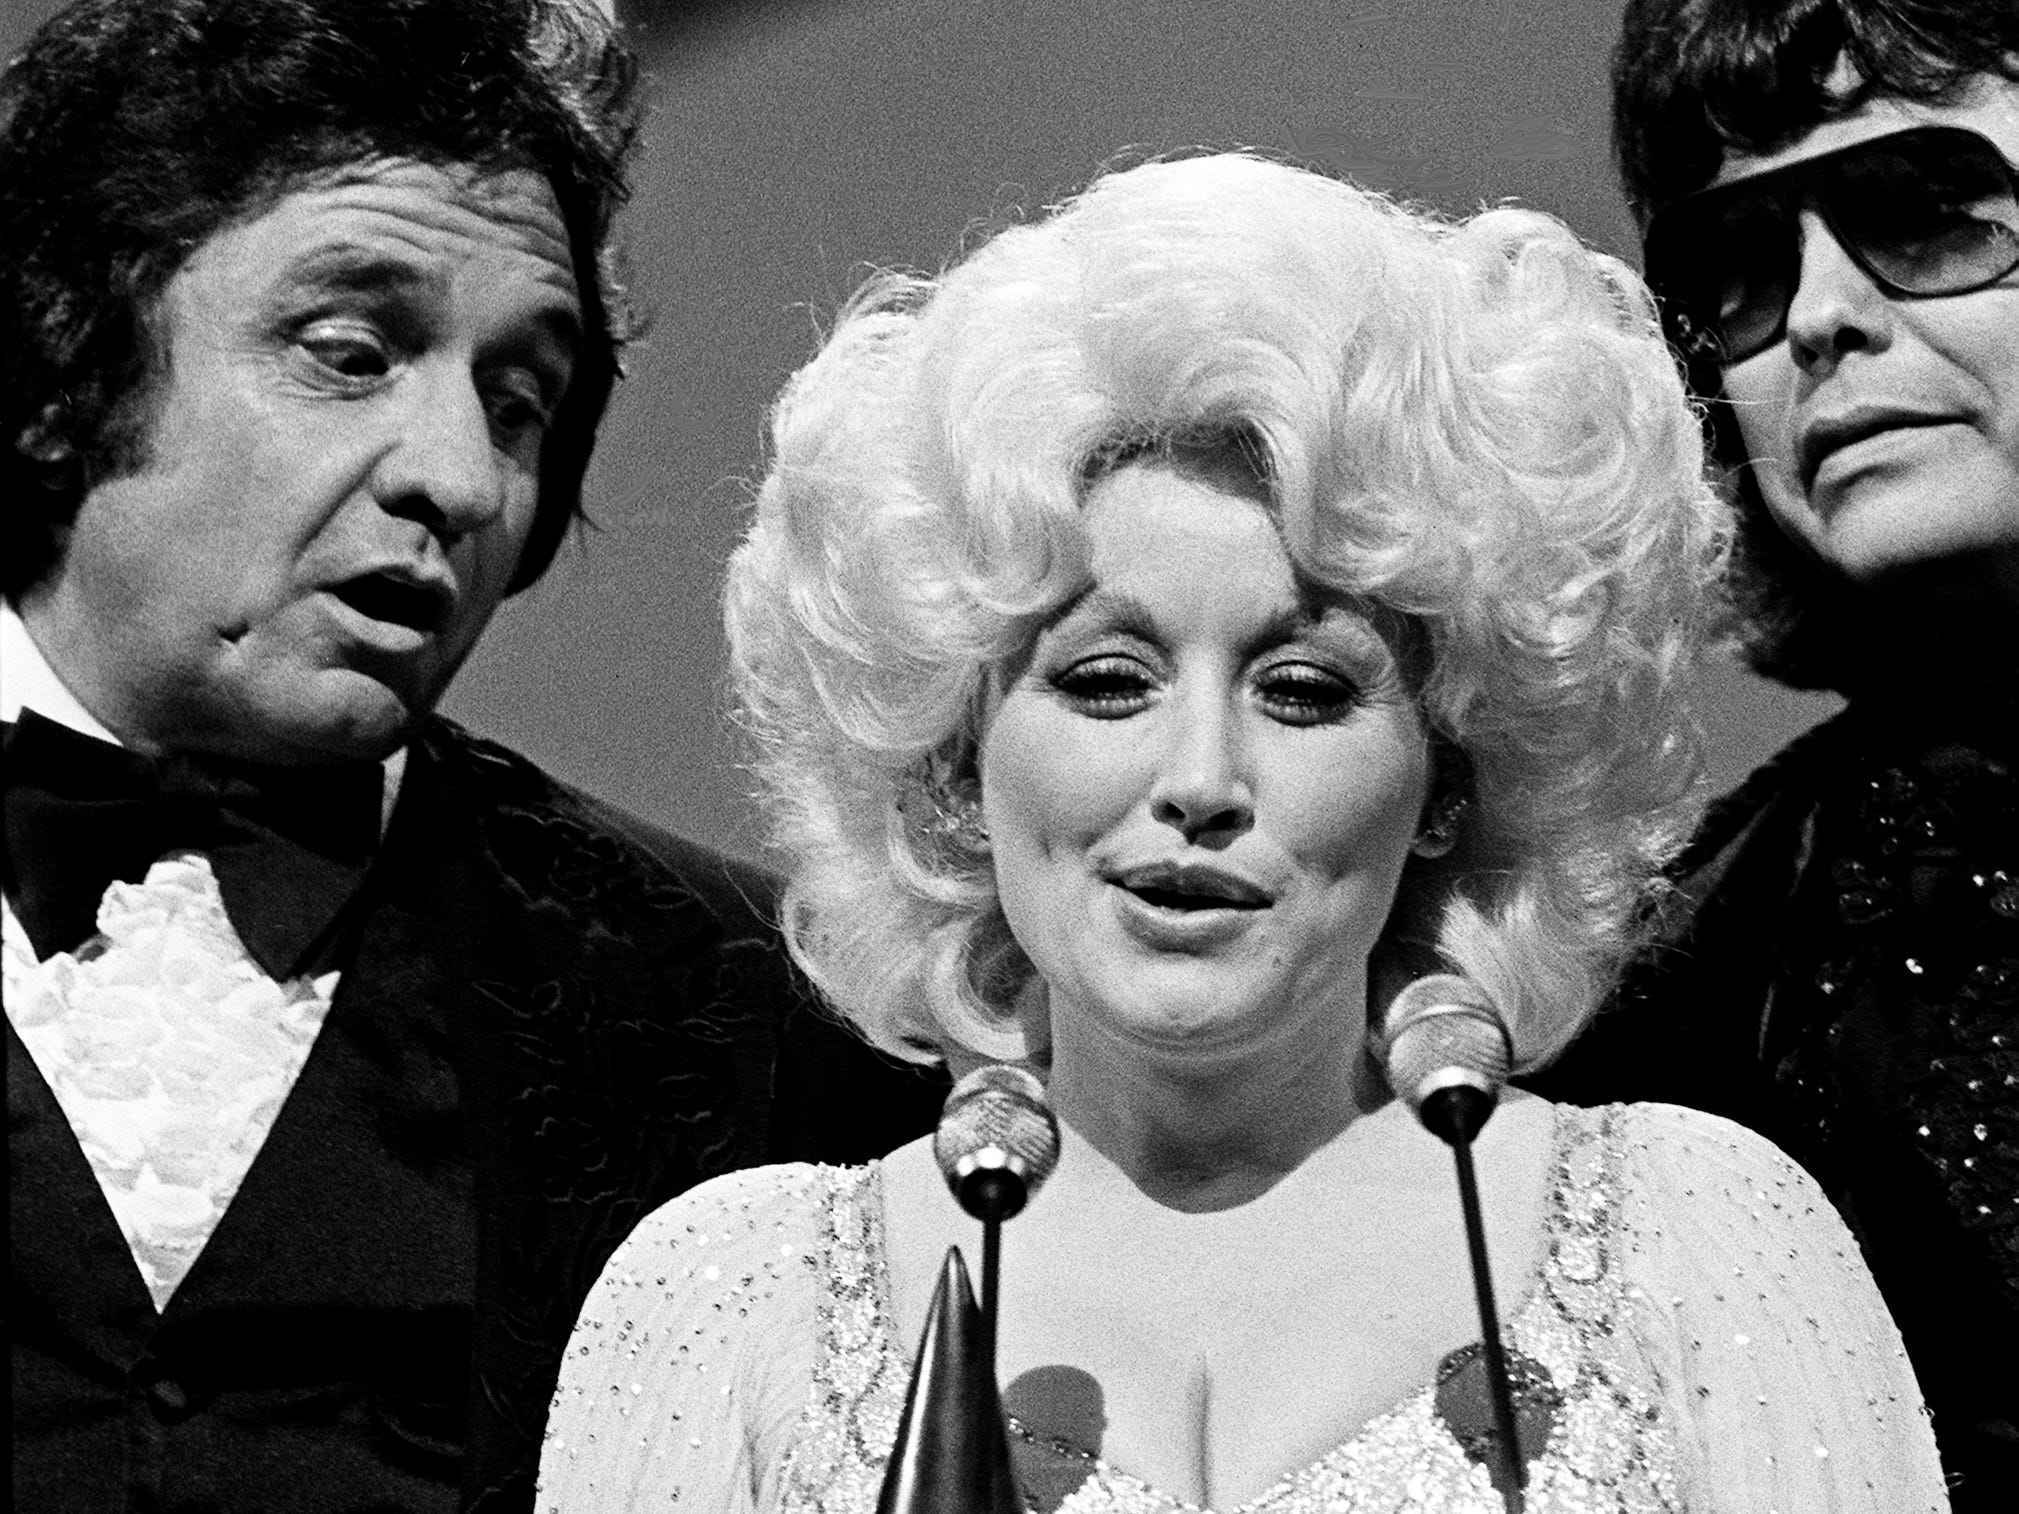 Dolly Parton speaks after winning the Entertainer of the Year award during the 12th annual CMA Awards show at the Grand Ole Opry House on Oct. 9, 1978. Standing by are presenters Johnny Cash, left, and Ronnie Milsap.